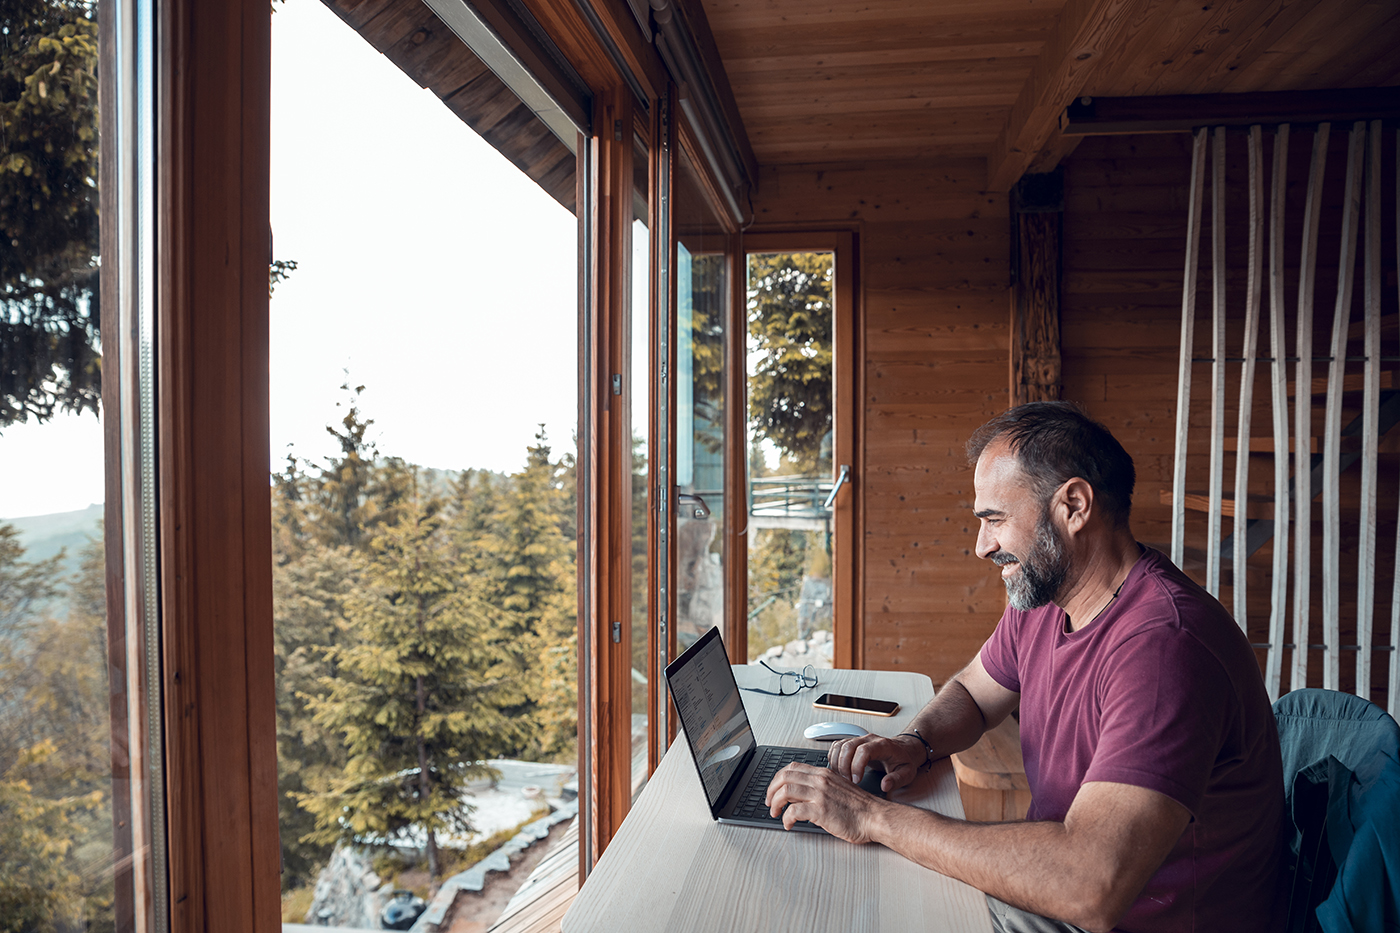 man using internet on laptop in rural location